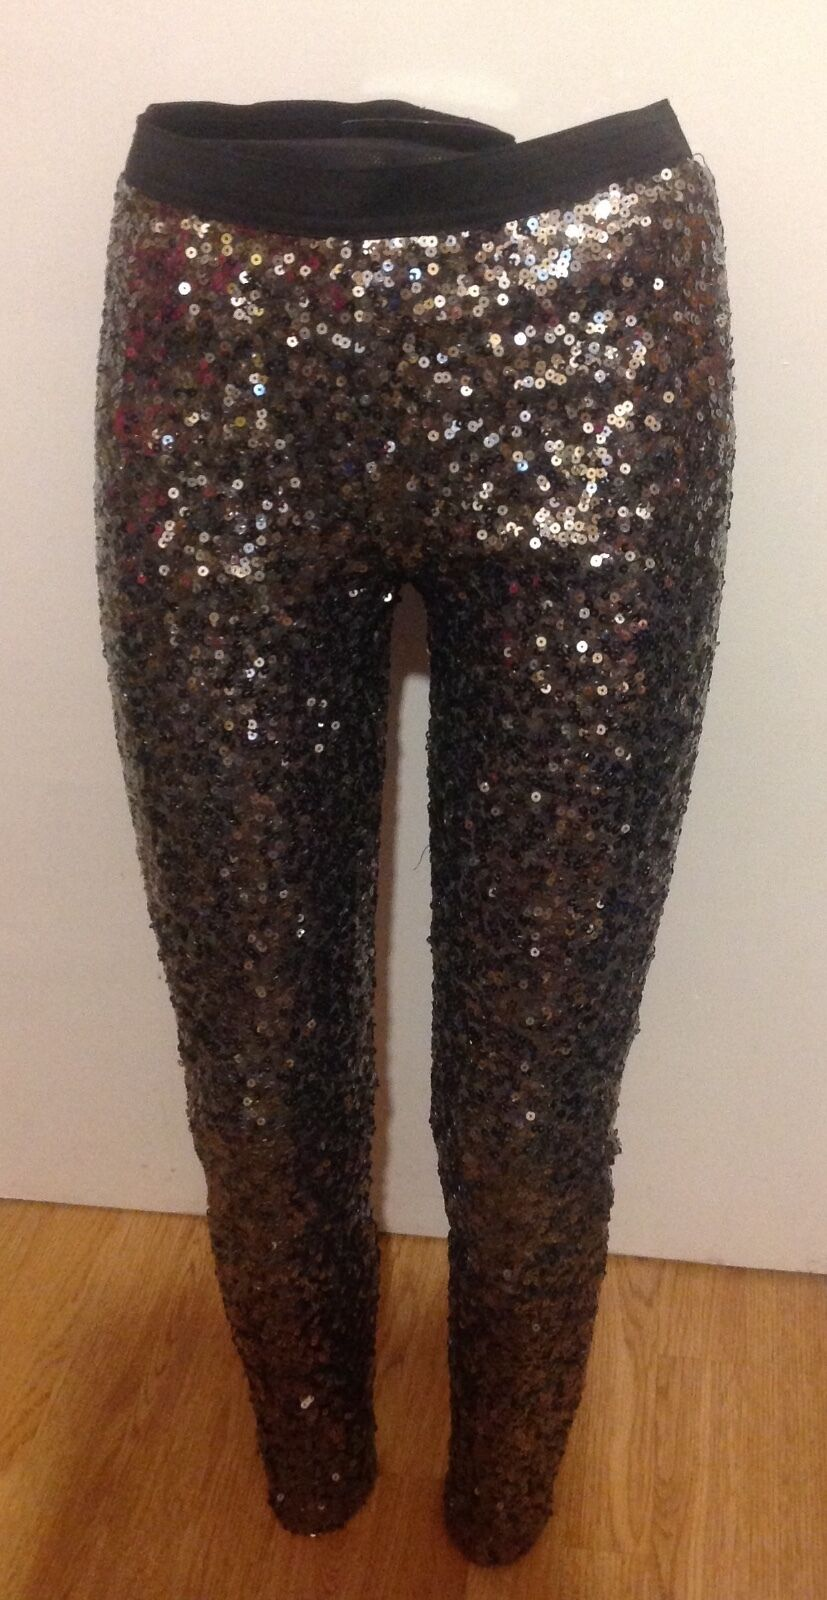 FRENCH CONNECTION SEQUIN TUXEDO, LINED LEGGINGS SIZE SMALL